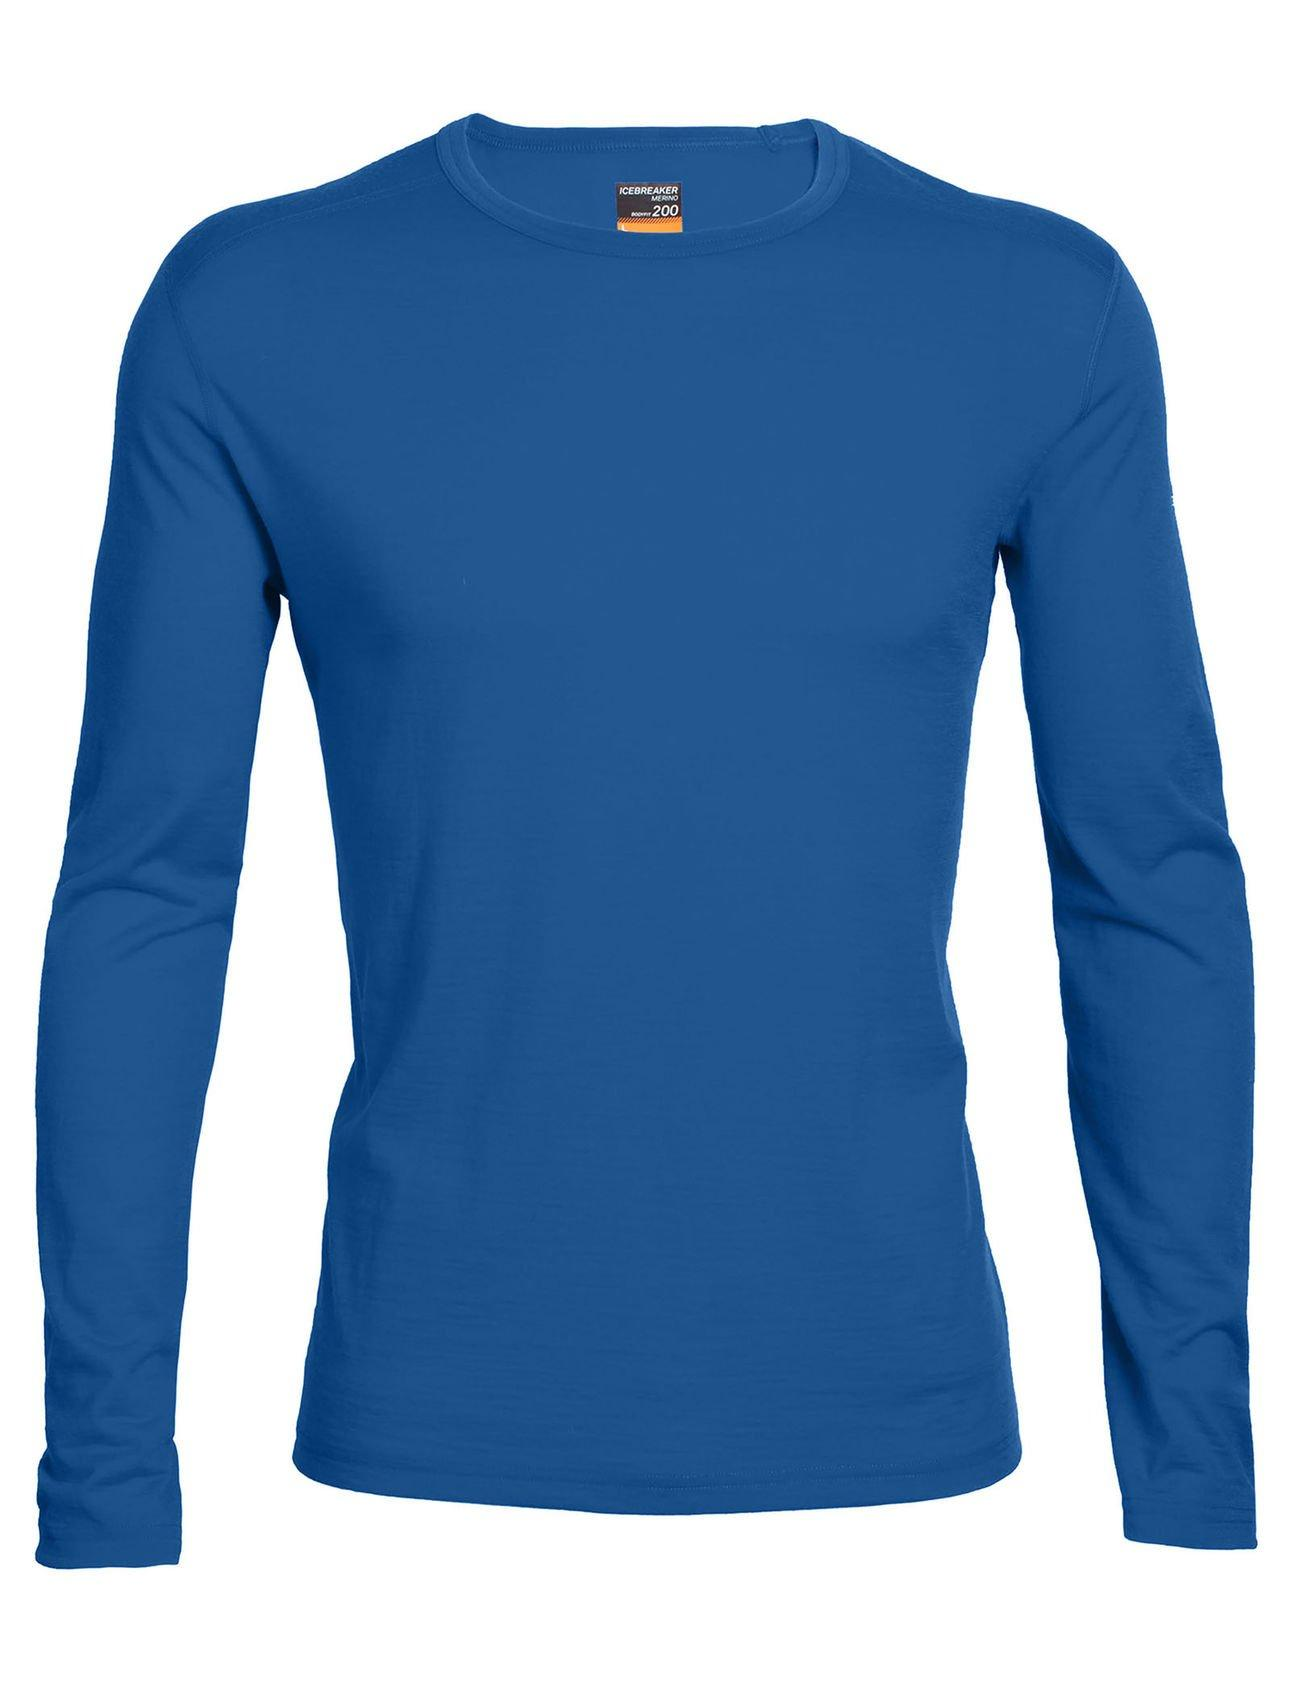 Merino Wool Thermals & Base Layer Clothing for Men